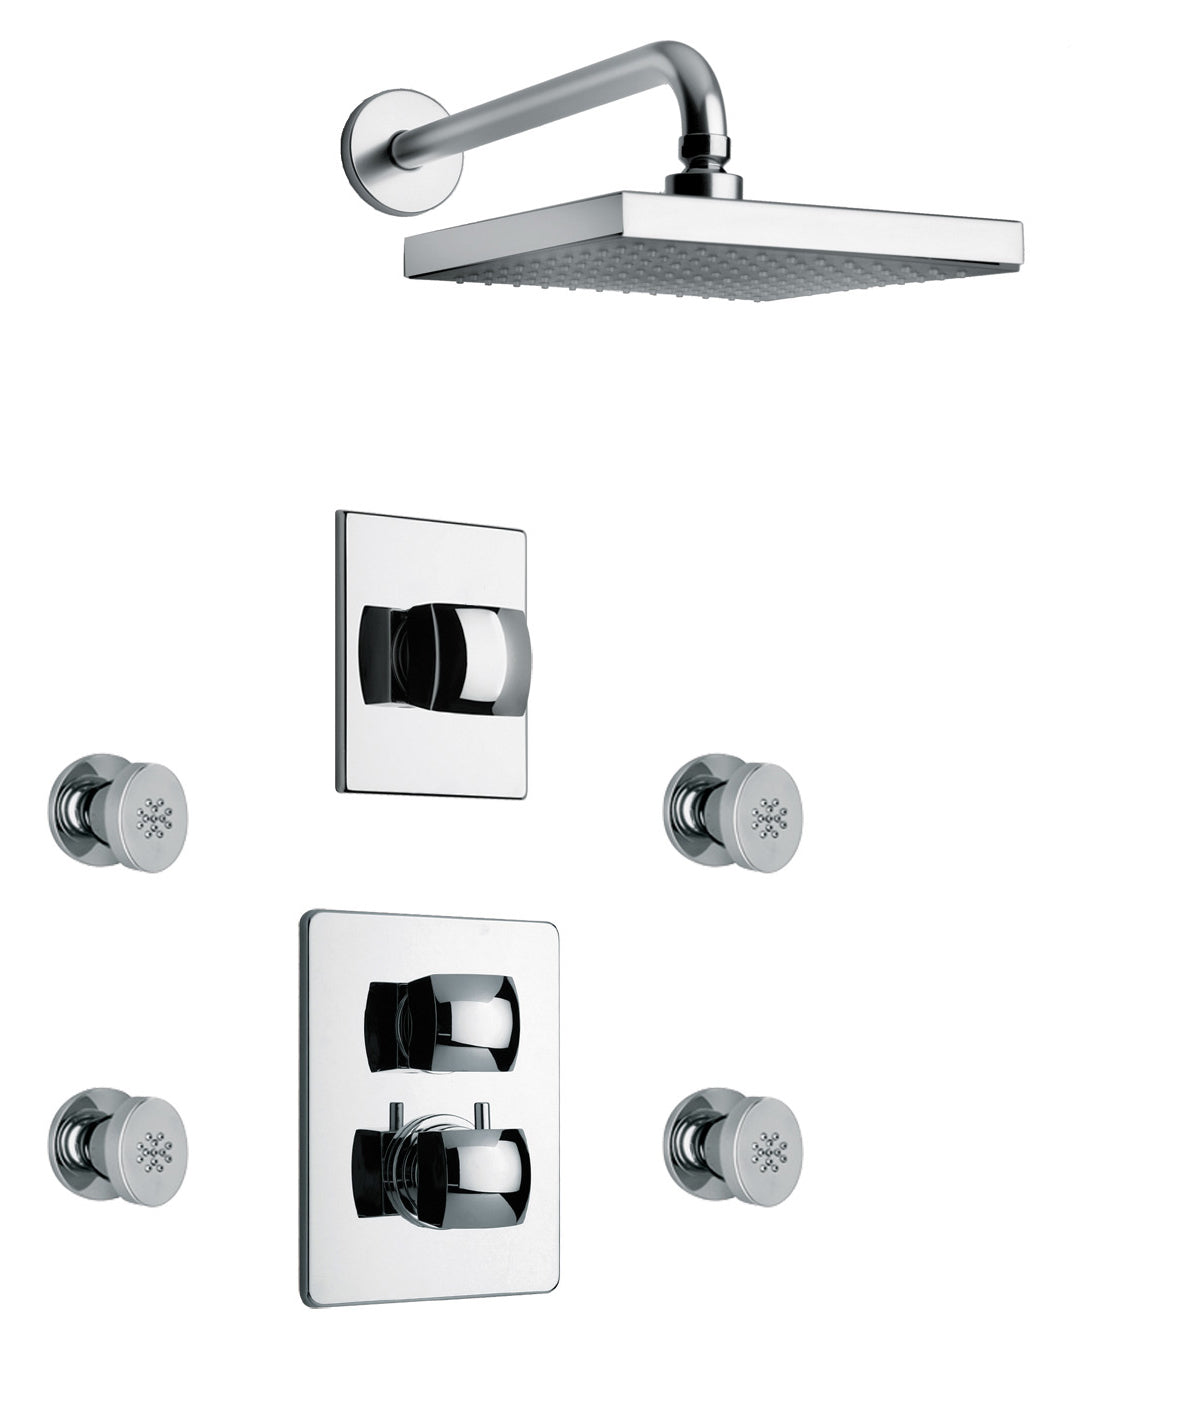 Lady Thermostatic Shower With 3 4 Ceramic Disc Volume Control 3 Way Diverter And 4 Body Jets In Chrome